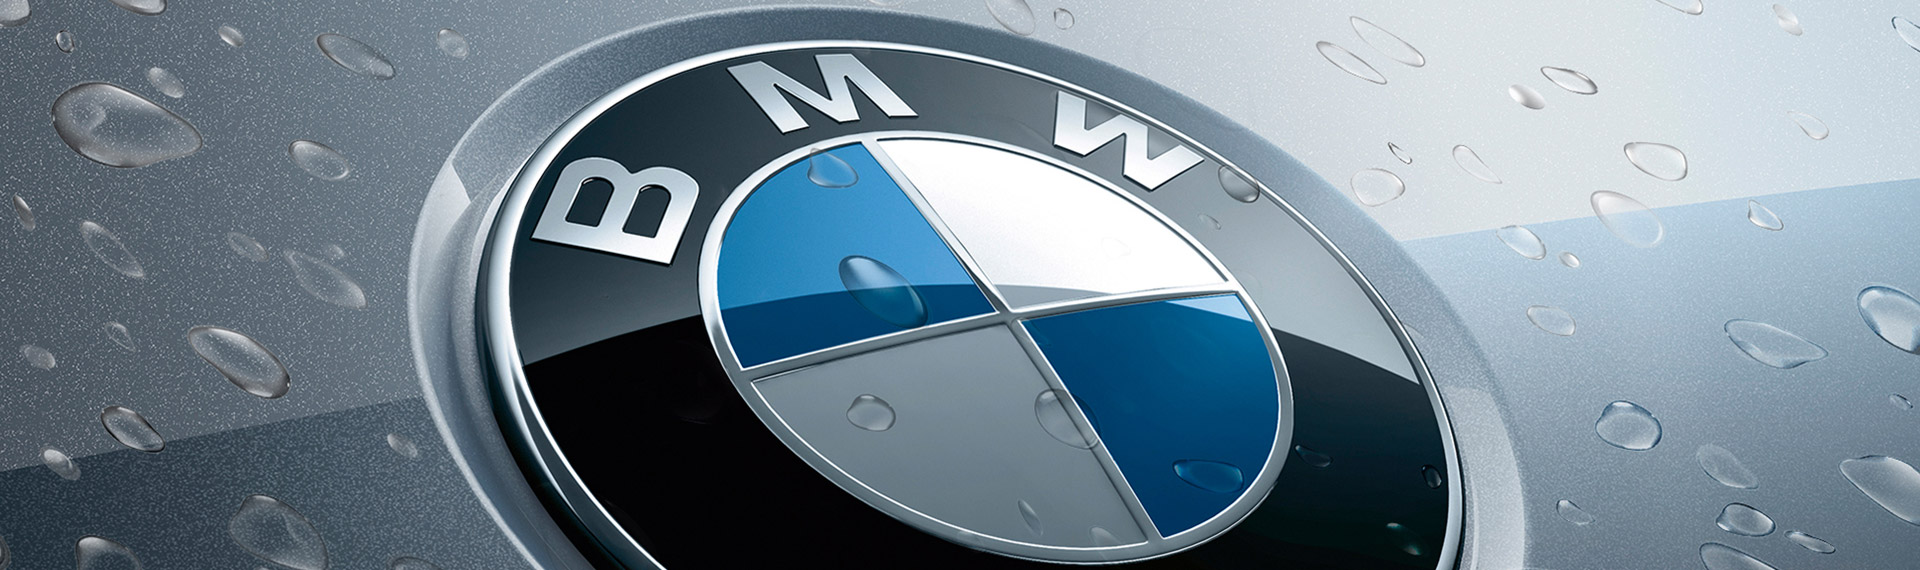 BMW logo with water droplets